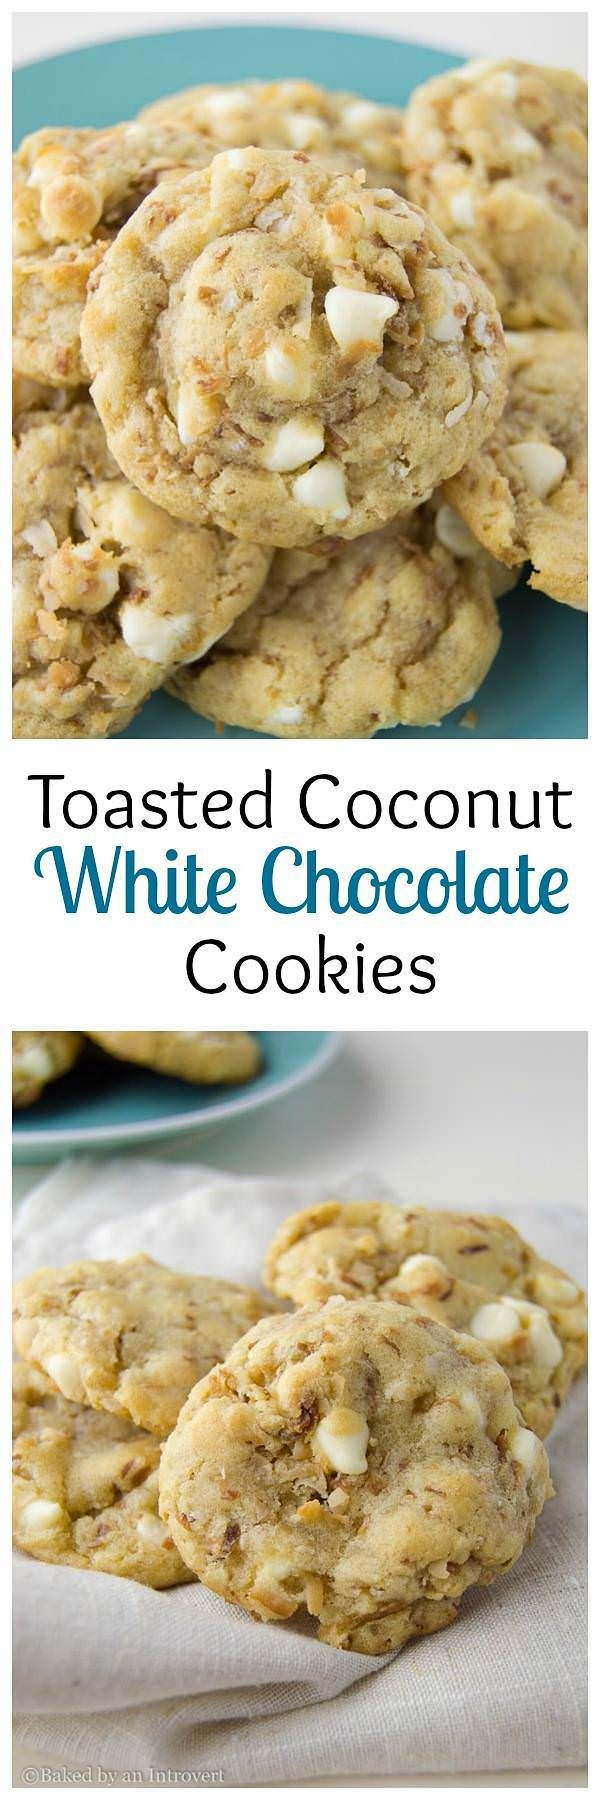 Toasted Coconut White Chocolate Chip Cookies are the chewiest and softest white chocolate chip cookie with loads of toasted coconut. via @introvertbaker